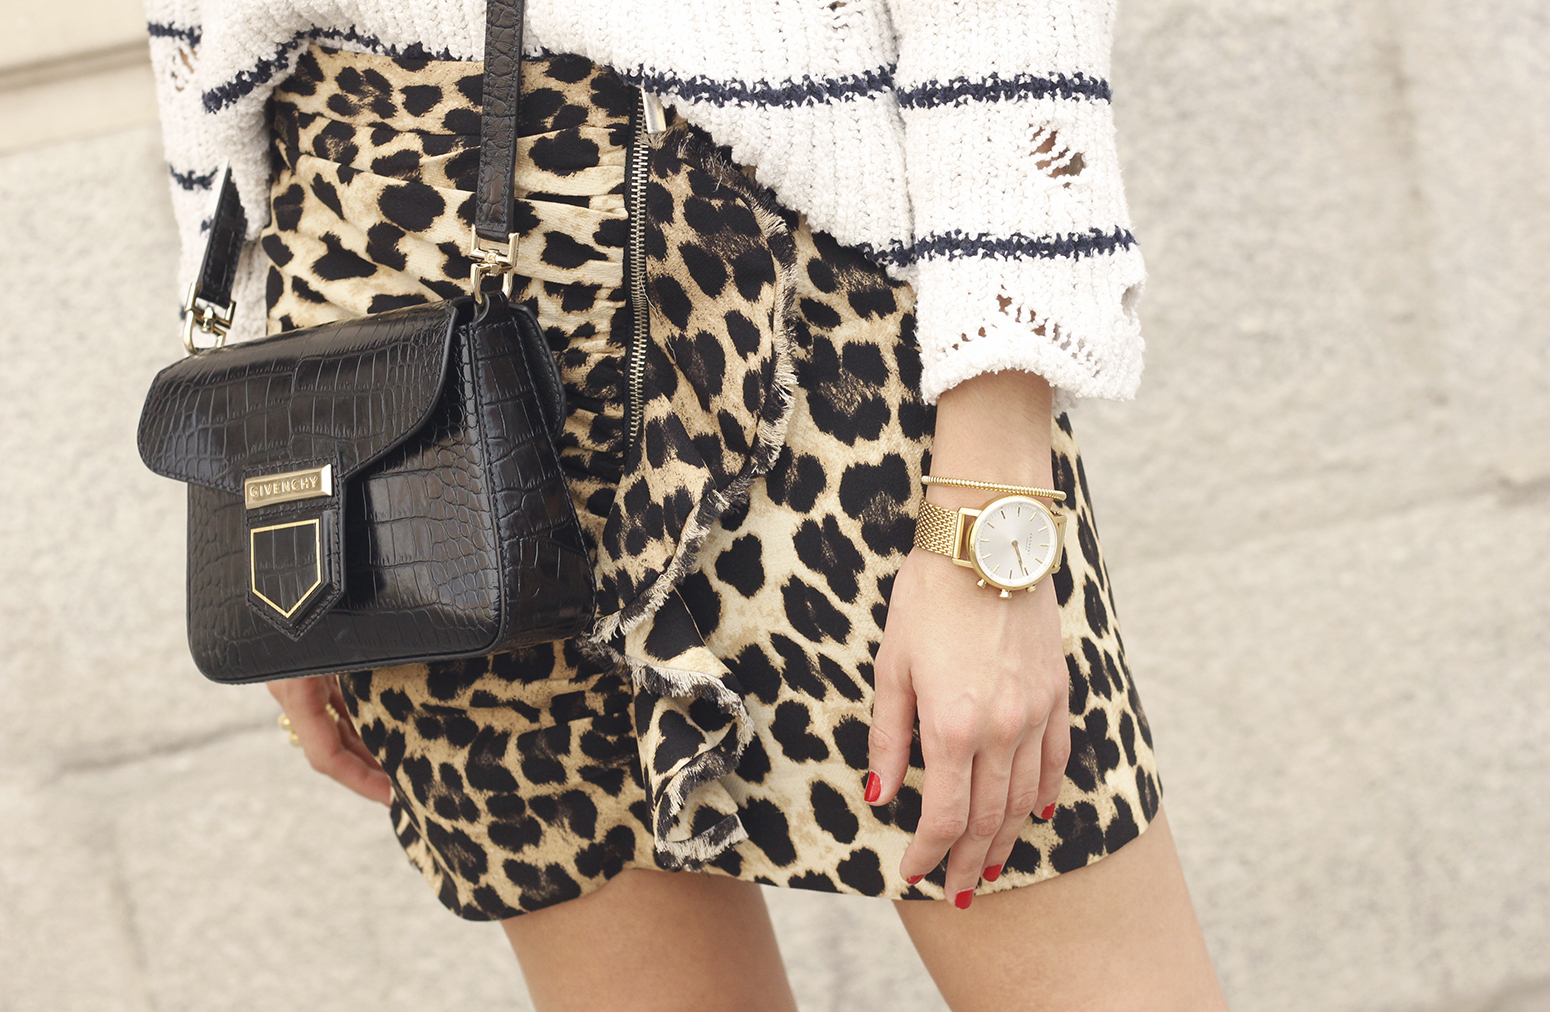 leopard printed skirt striped sweater givenchy bag outfit fashion style trend17